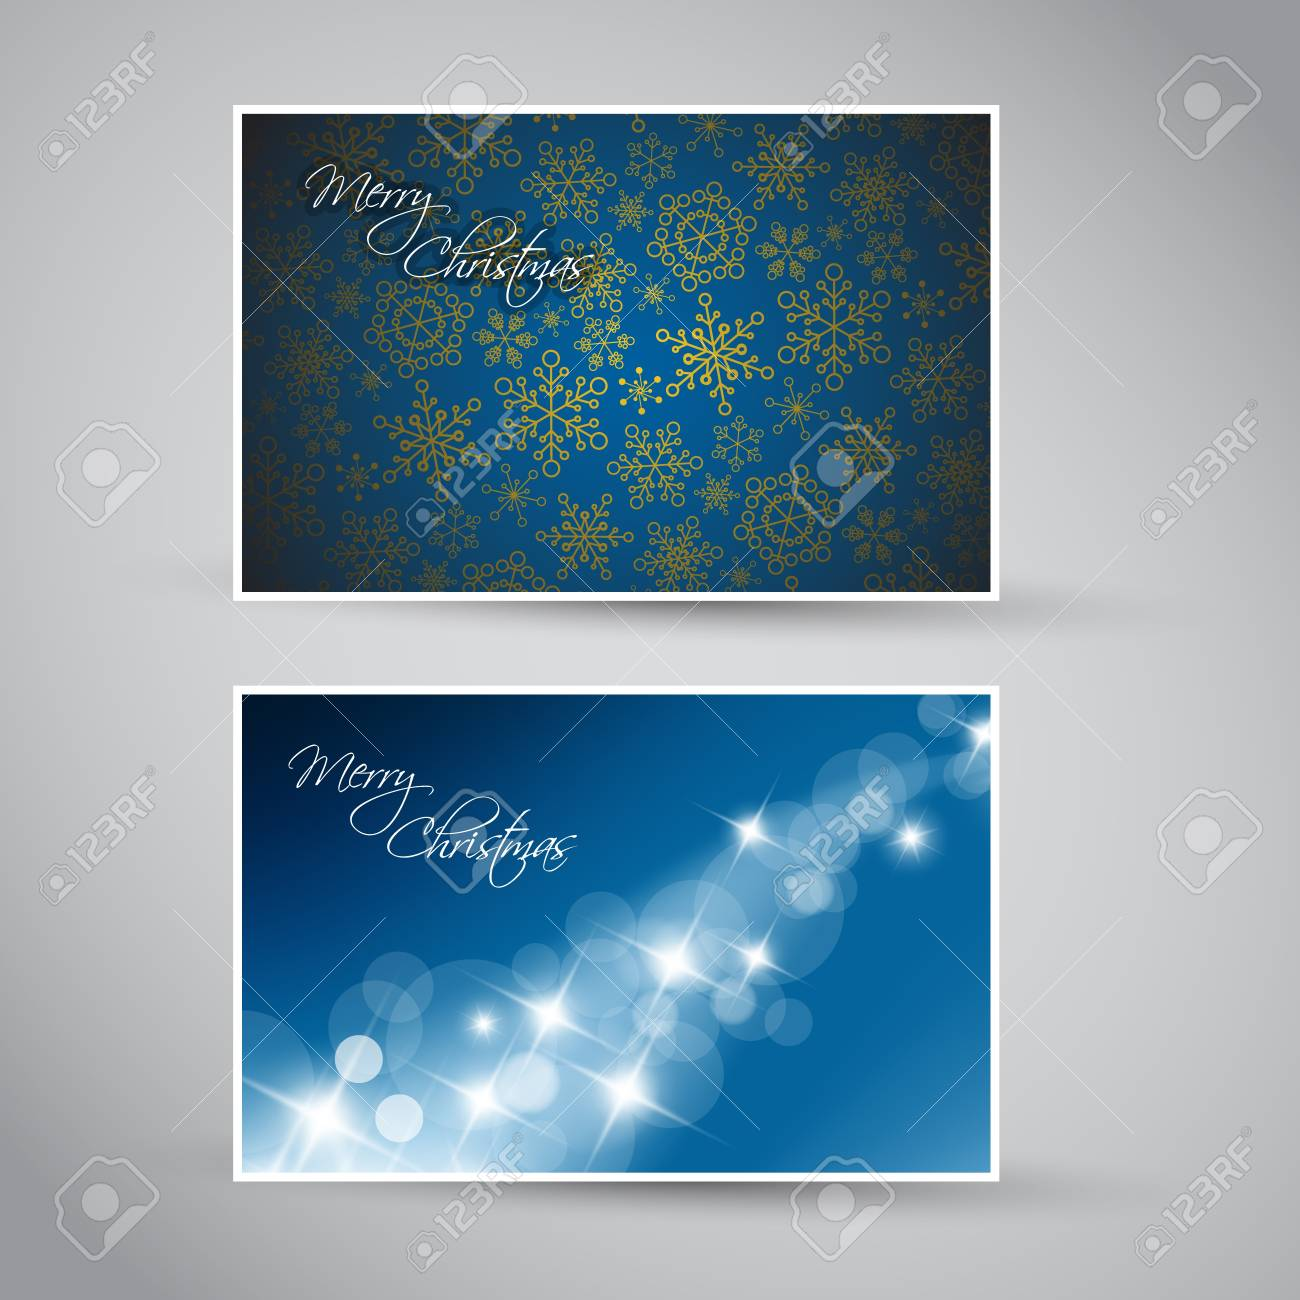 Set of vector christmas / New Year banners (cards) 2012 - blue version Stock Vector - 10508809